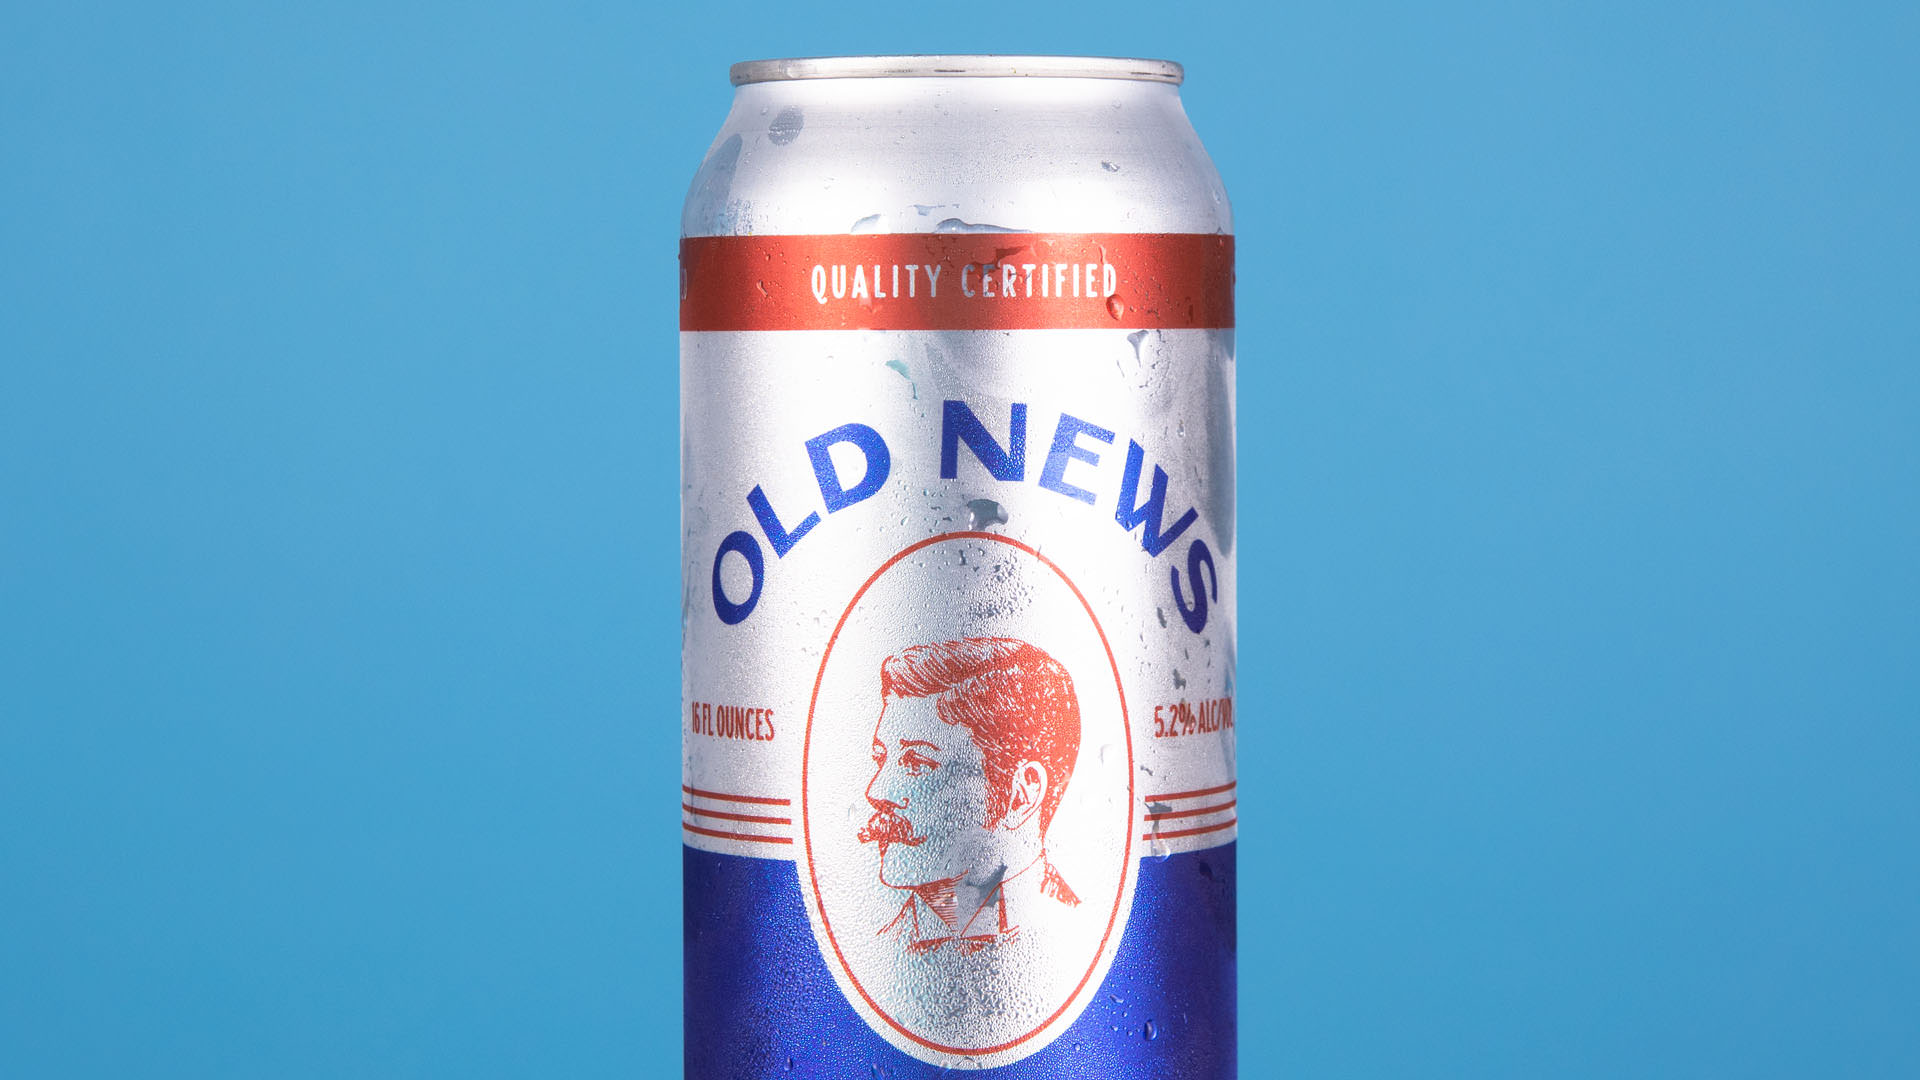 old news beer by Lincoln's beard brewing